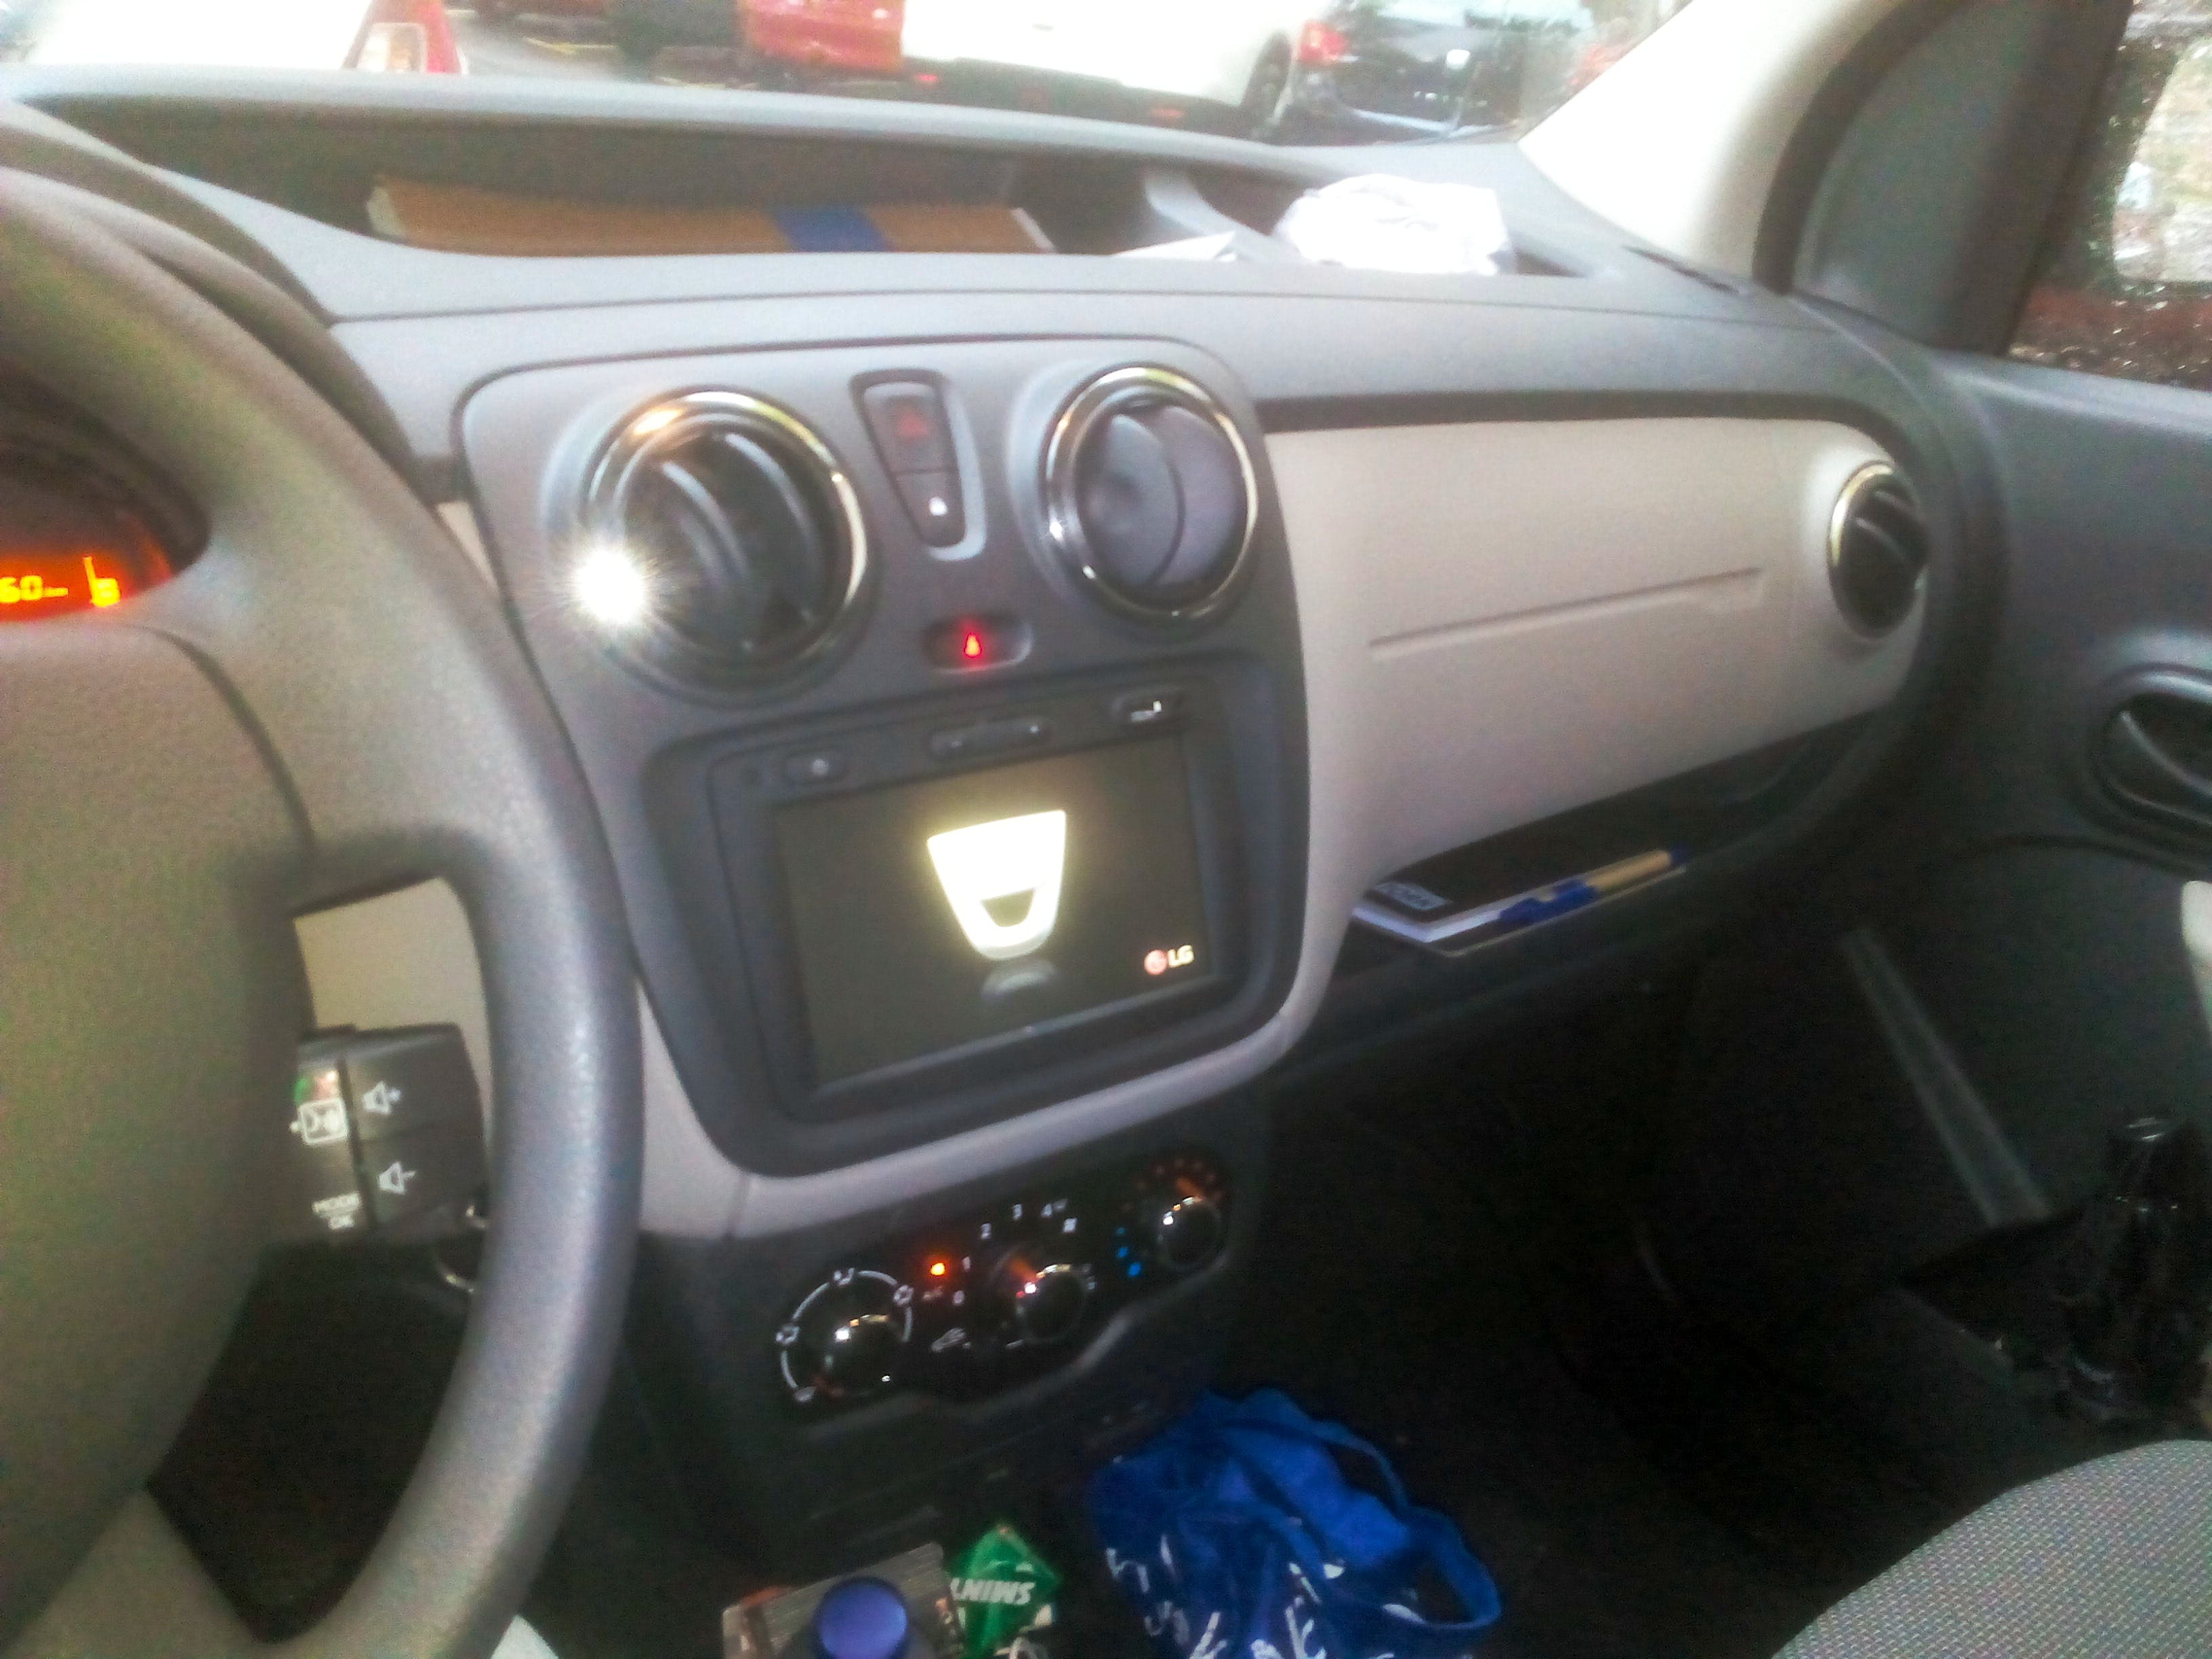 Dacia Dokker 1.5DCI Ambiance 90 4p con Silla infantil